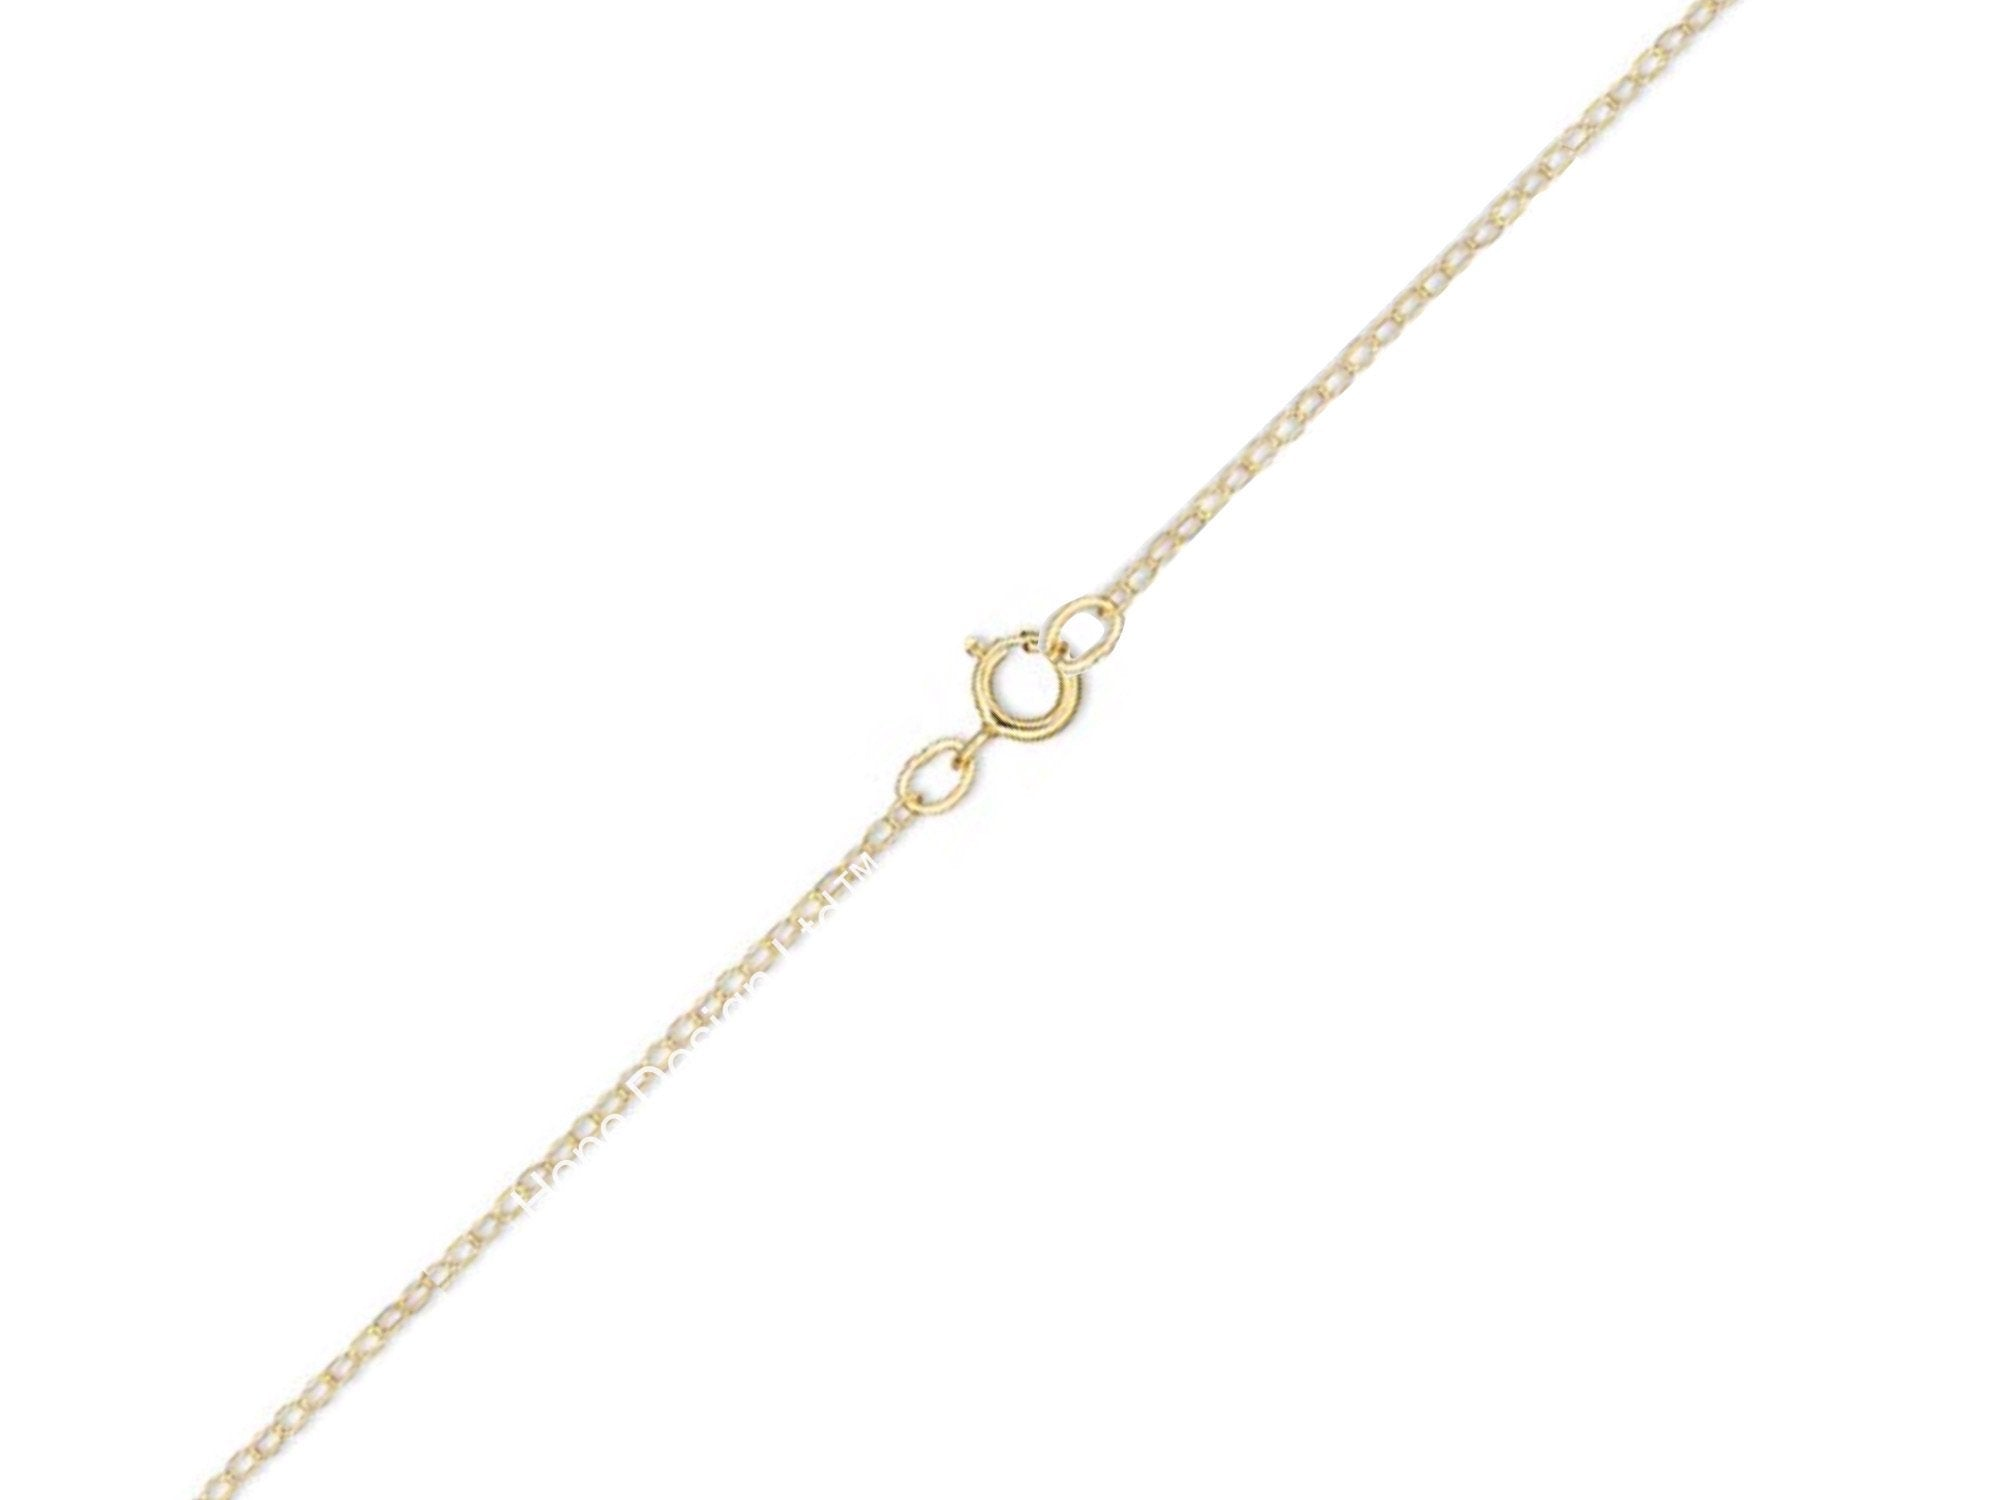 Gold-Plated Sterling Silver Chain